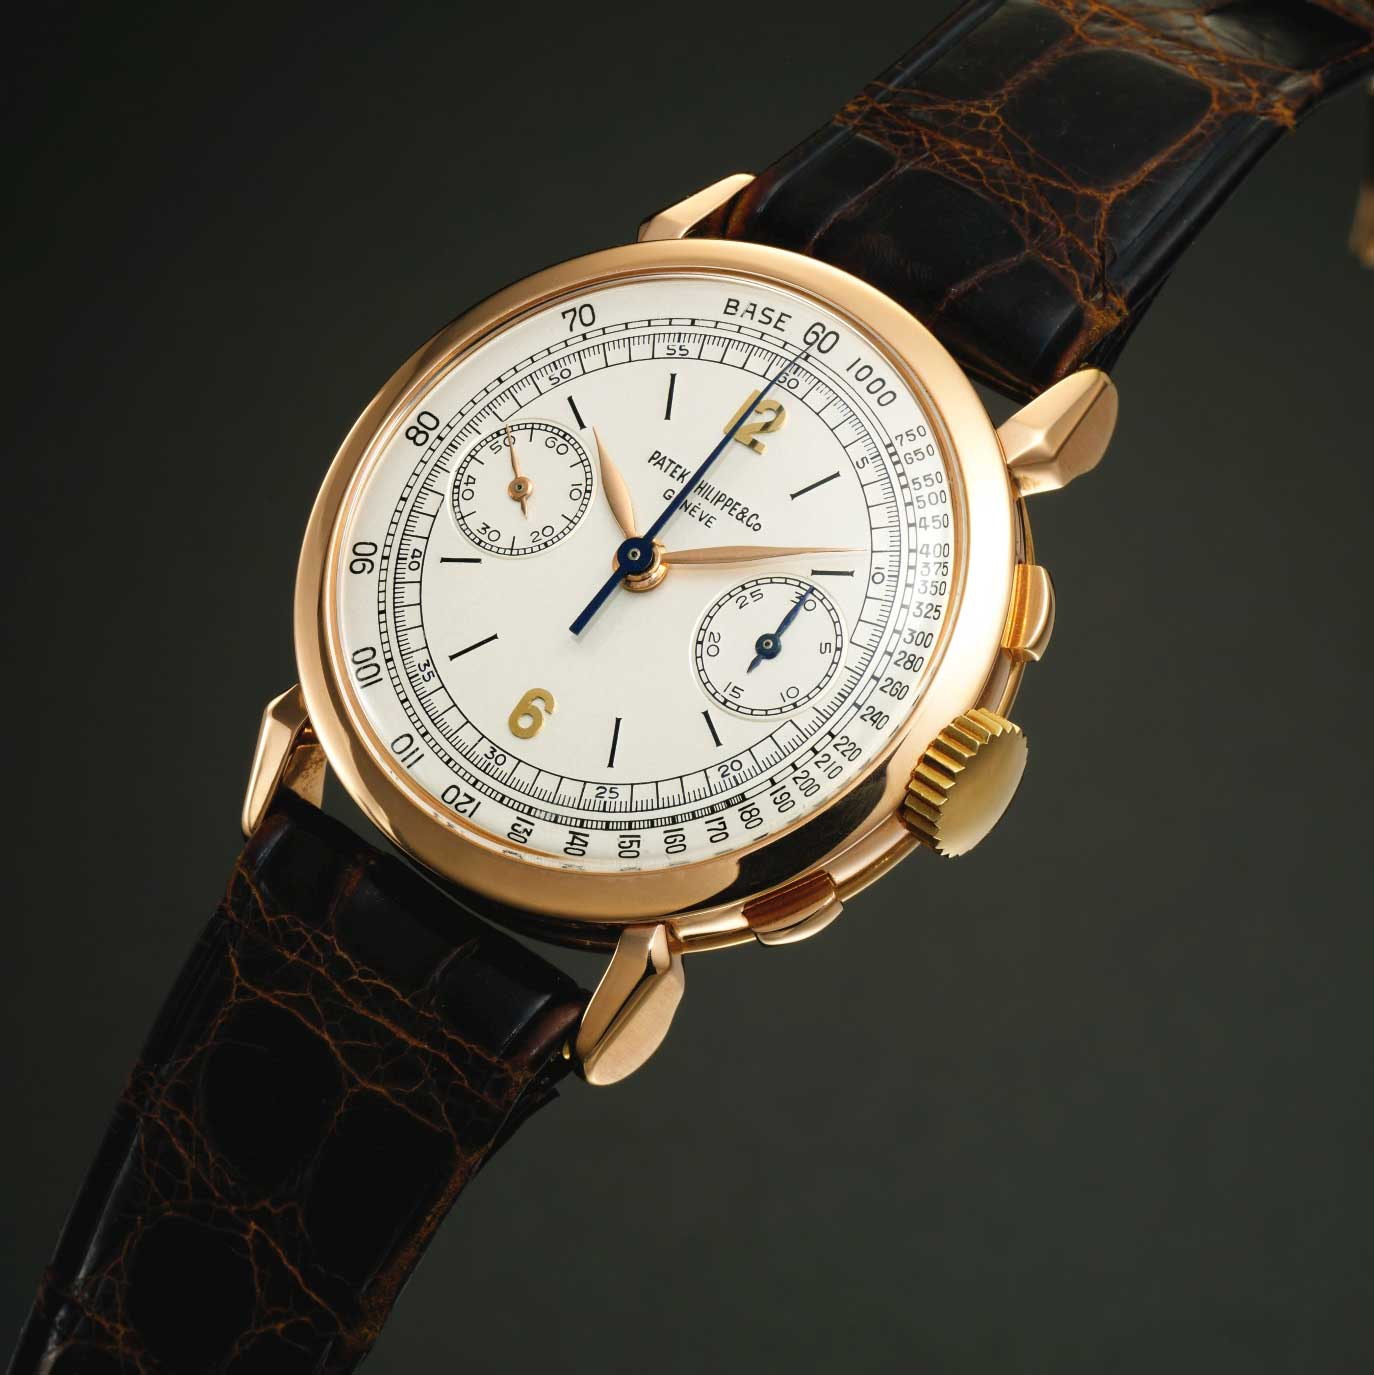 1948 Patek Philippe ref. 1579 pink gold chronograph with silvered dial, gold applied Arabic numerals and enamelled baton indexes (Image: Sothebys.com)